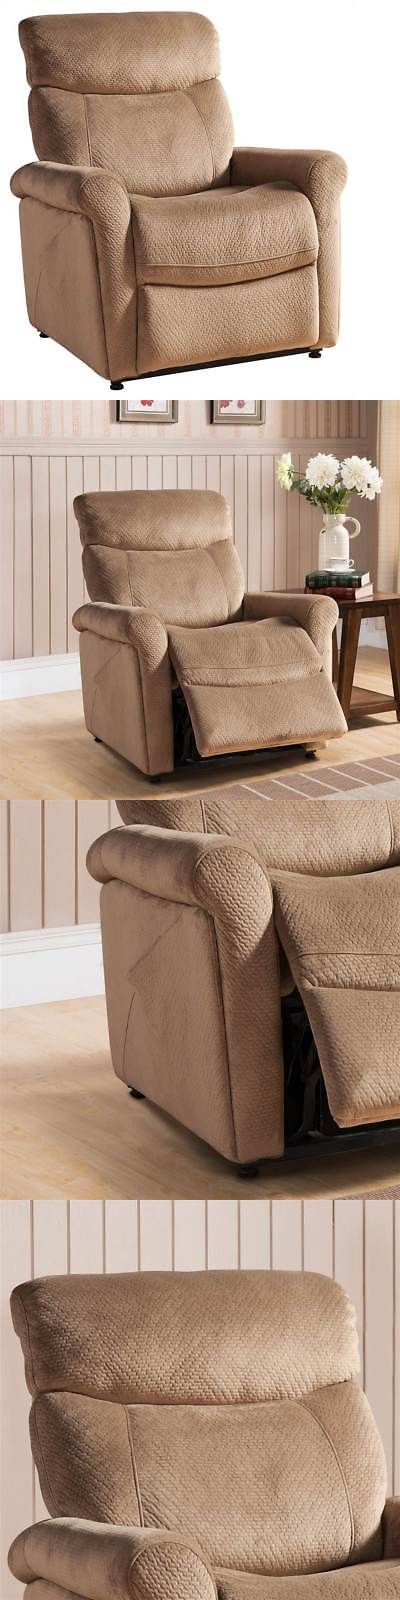 Electric Massage Chairs: Transitional Power Reclining Lift Chair In Brown [Id 3516296] -> BUY IT NOW ONLY: $626.91 on eBay!